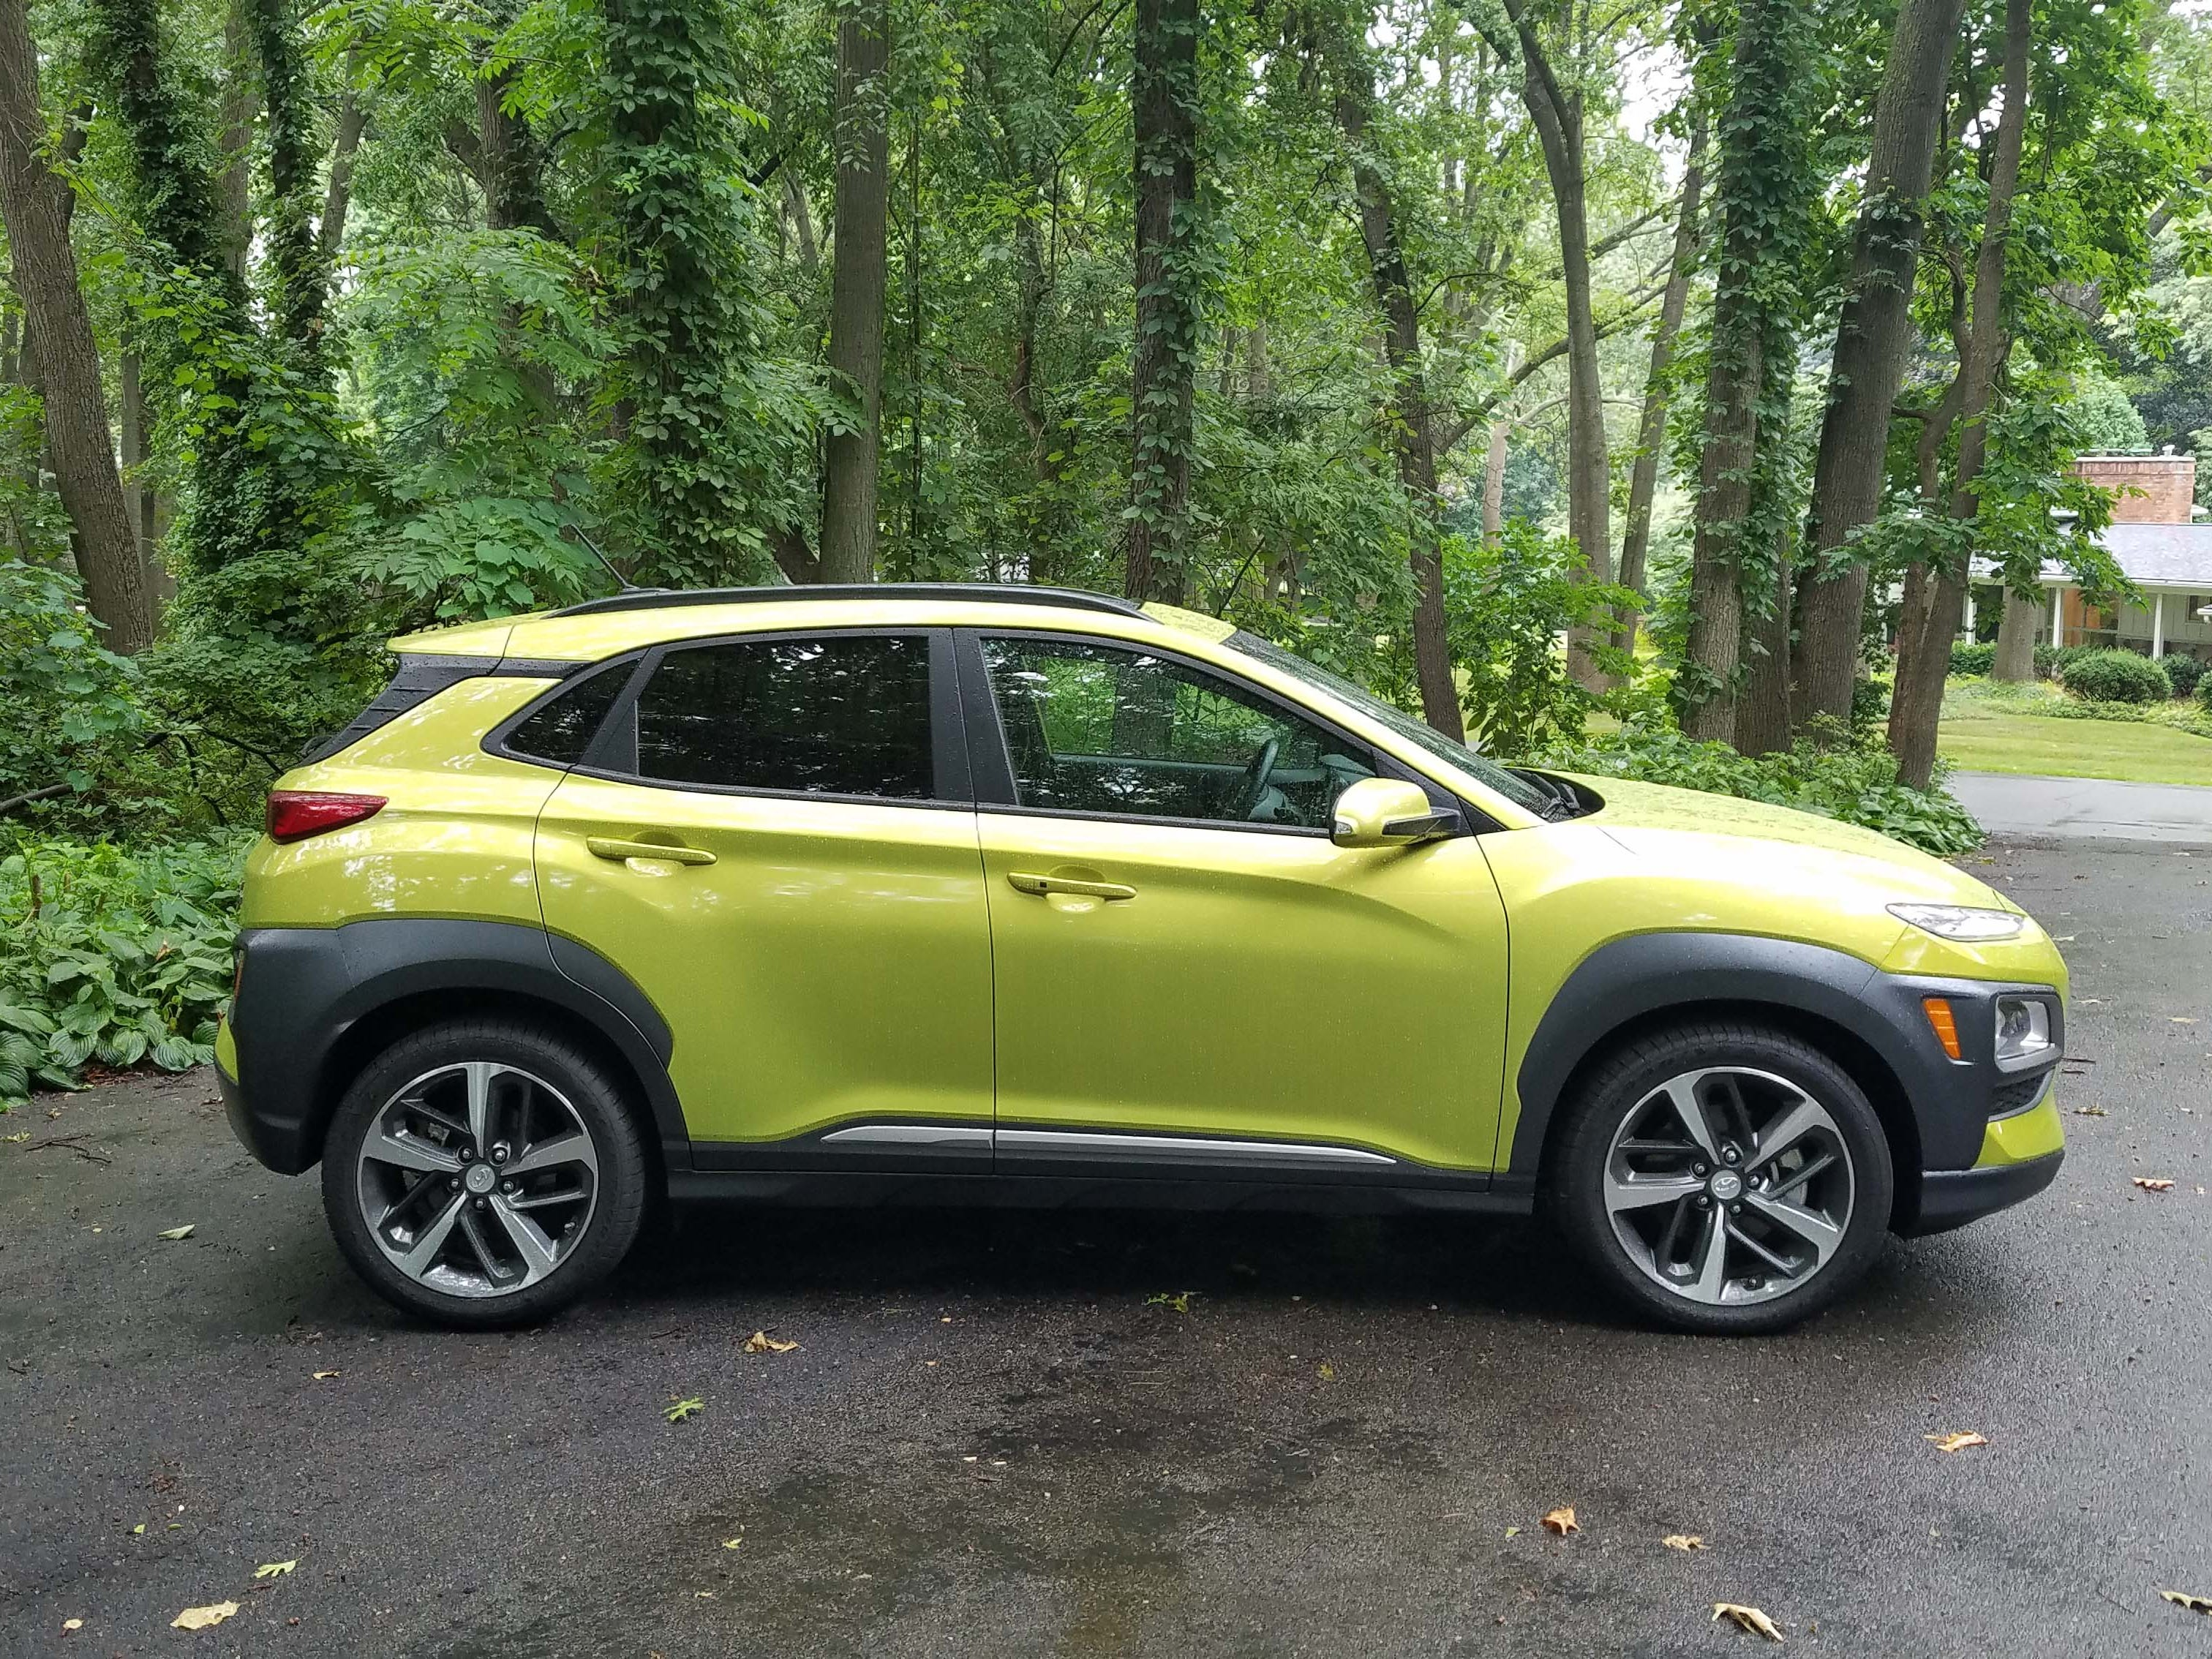 The 2018 Hyundai Kona has a lot going on with its sculpted fenders and shoulders and sporty roofline - but you'll be able to pick it out in the parking lot next to all the other 5-door utes. Especially if you paint it in Lime Twist.